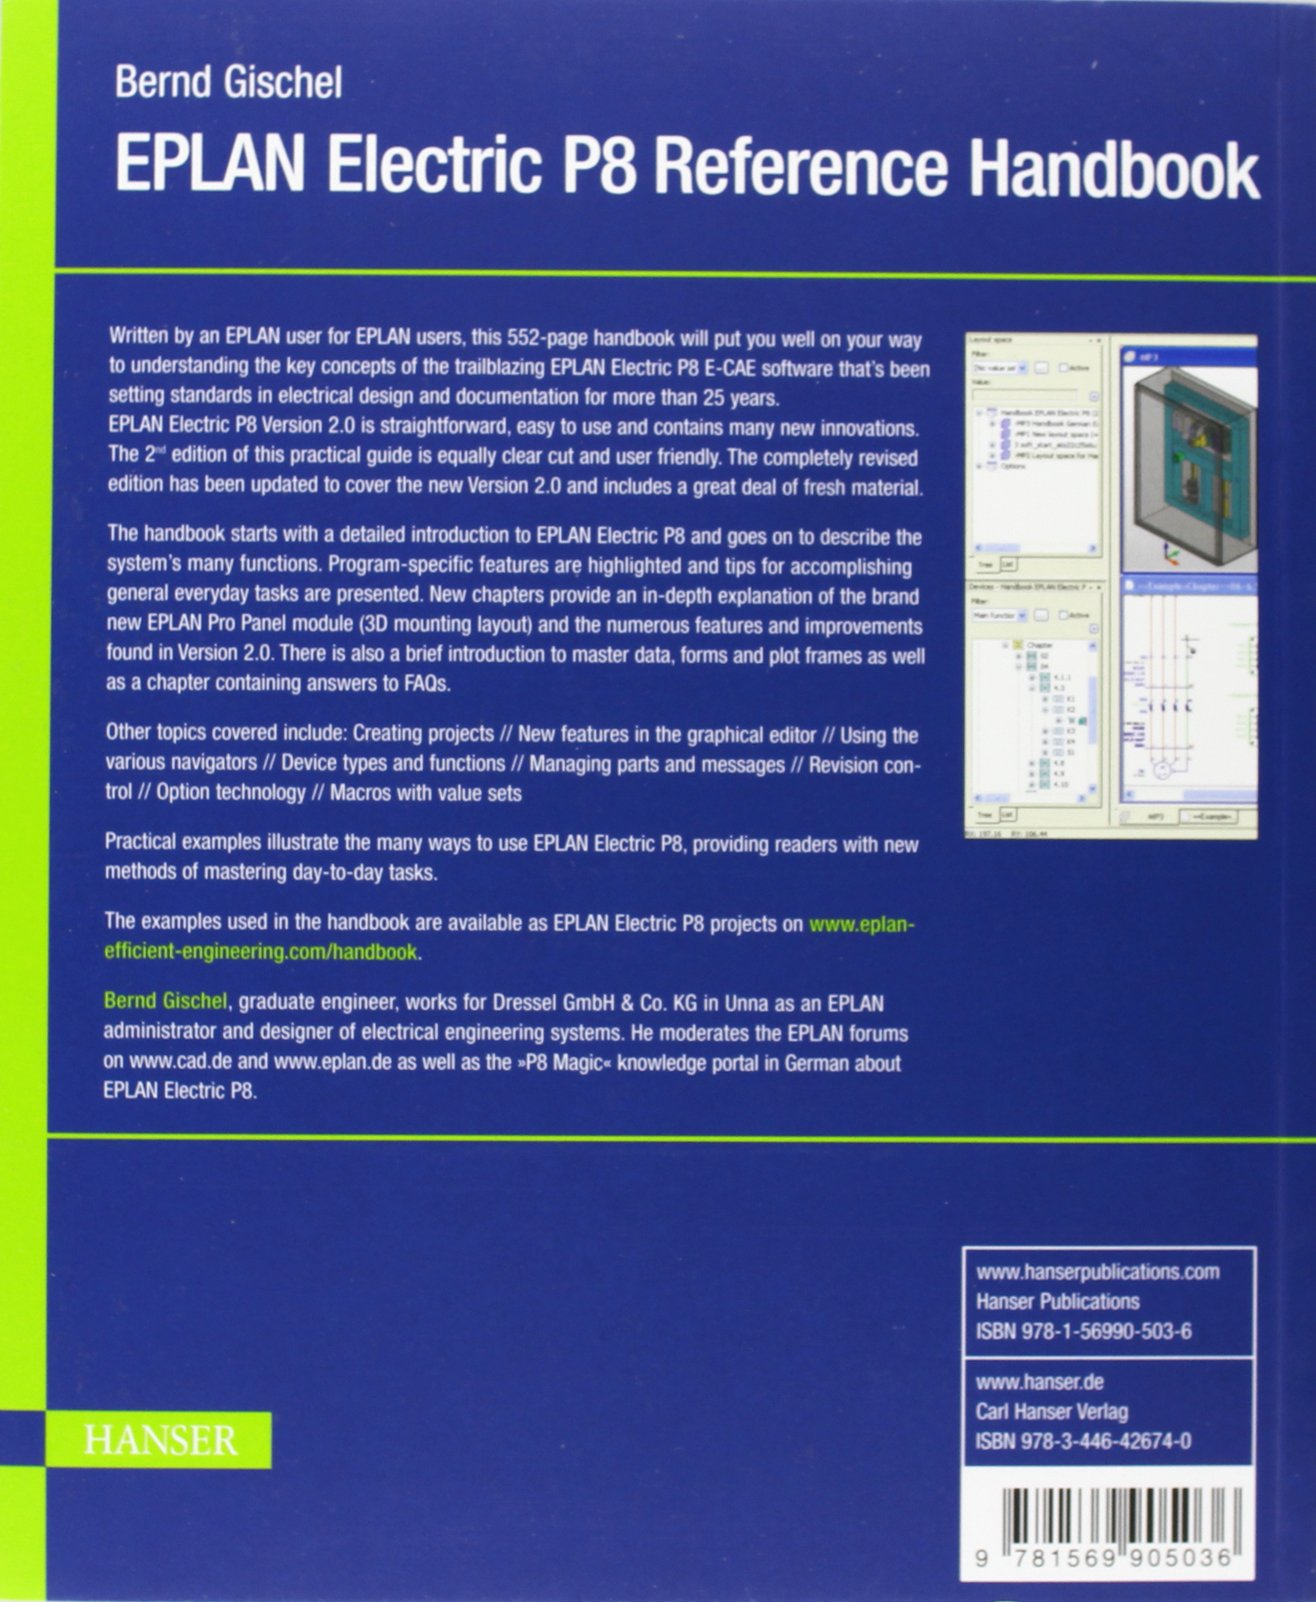 Buy EPLAN Electric P8 Reference Handbook Book Online at Low Prices in India  | EPLAN Electric P8 Reference Handbook Reviews & Ratings - Amazon.in